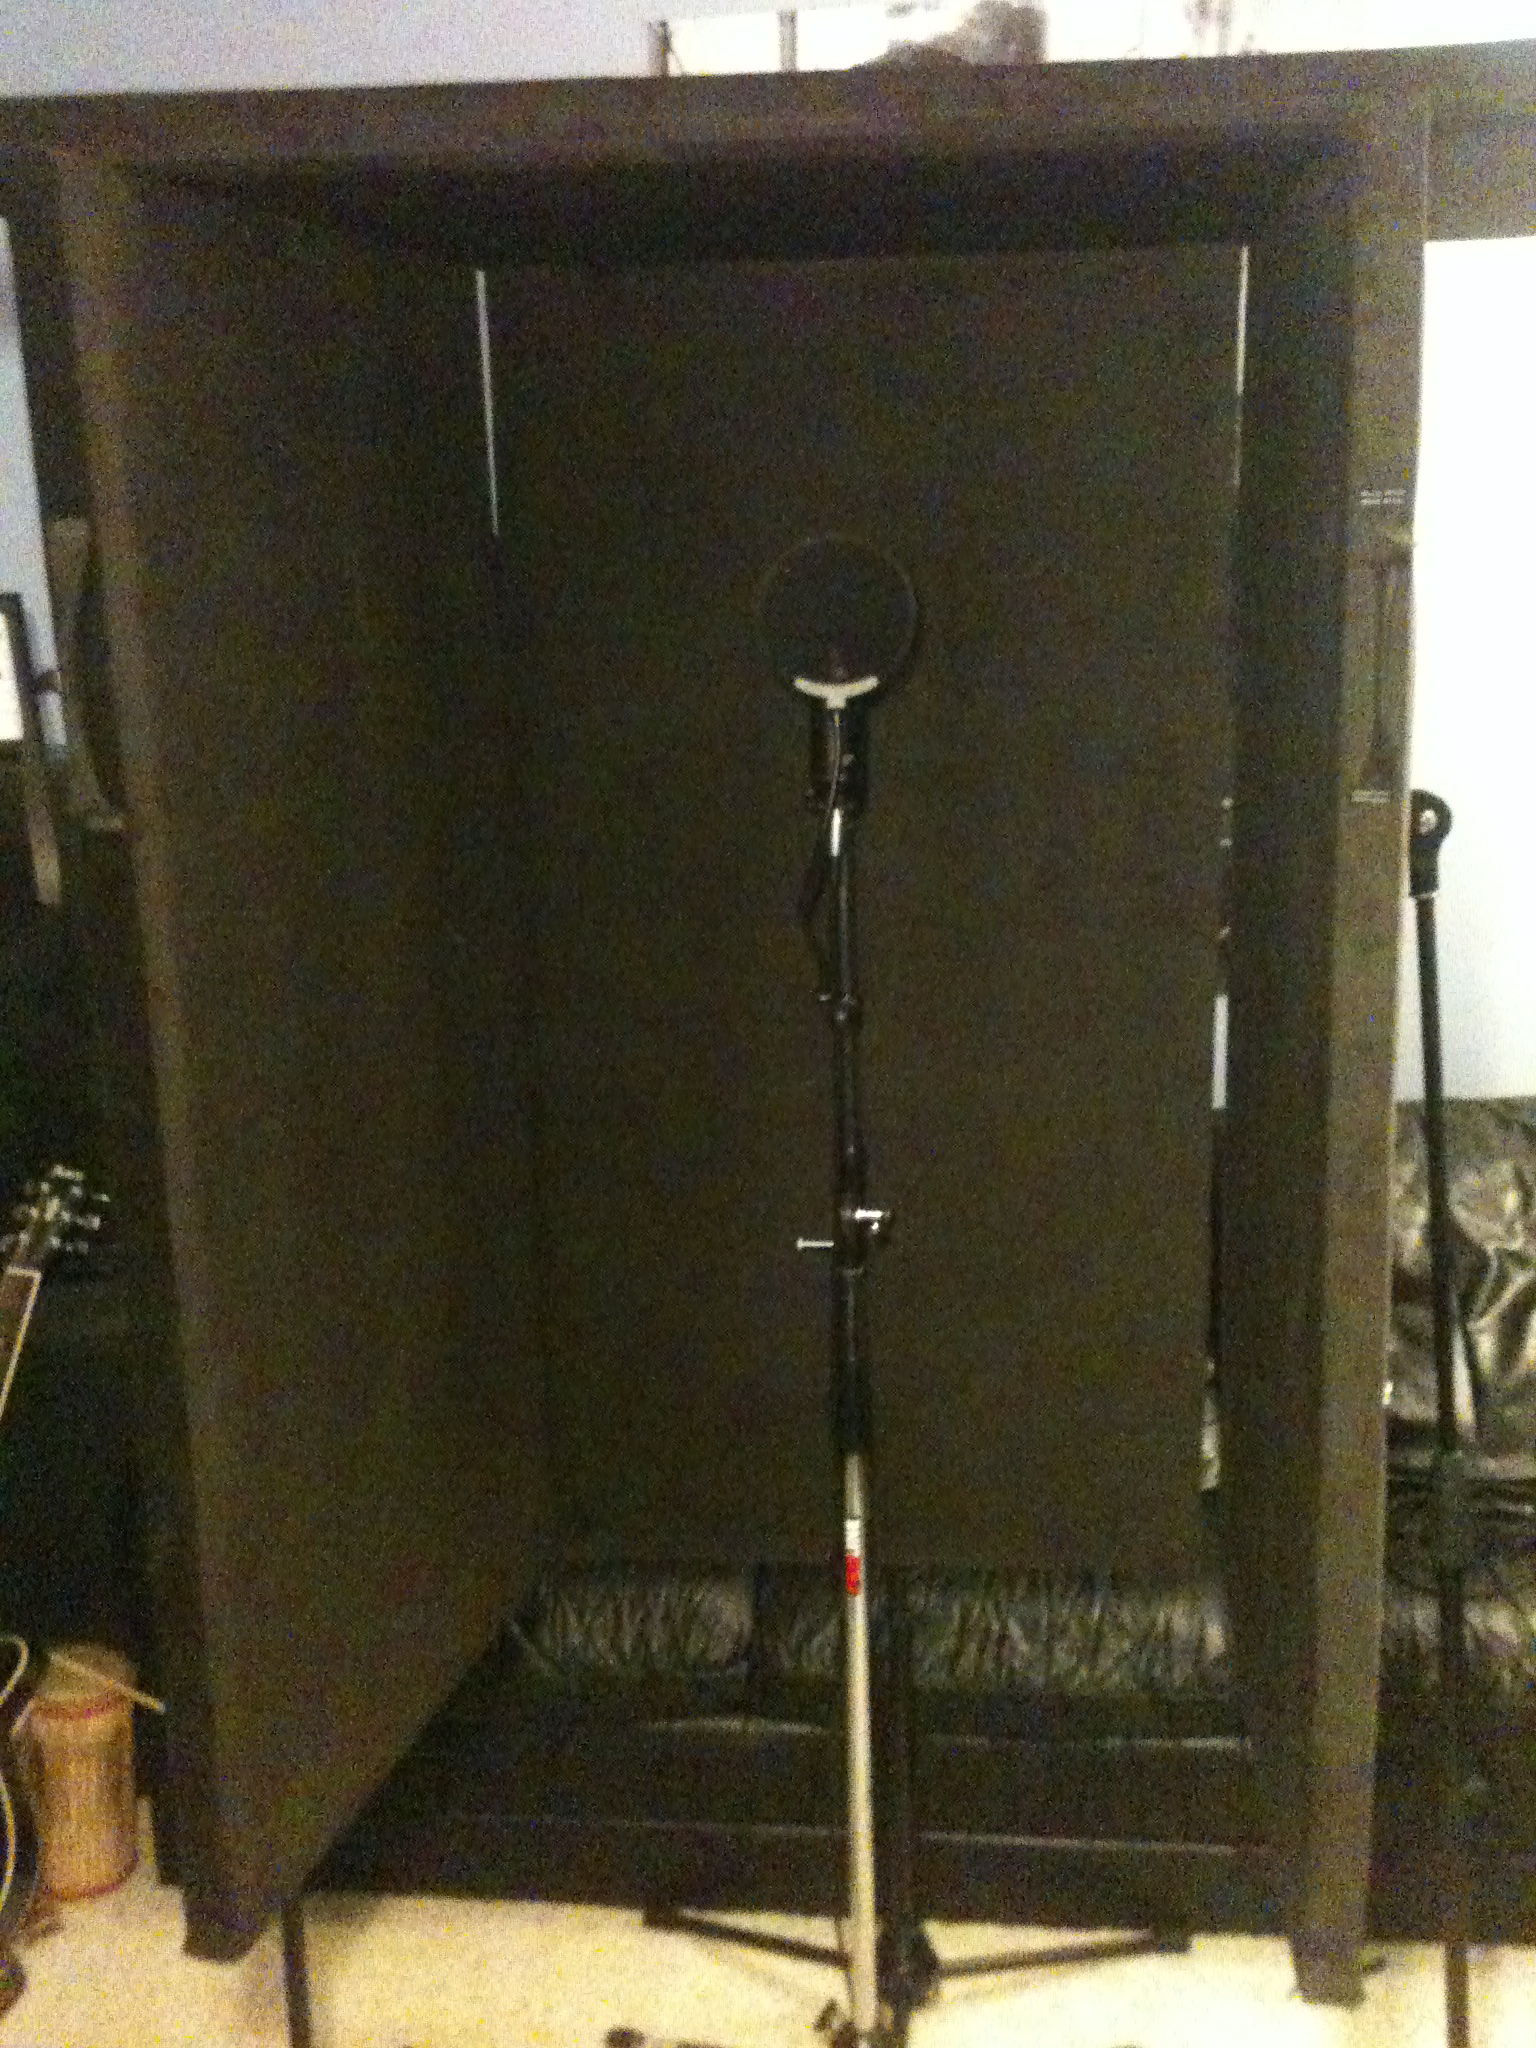 My Diy Portable Vocal Booth Is Complete Gearslutz